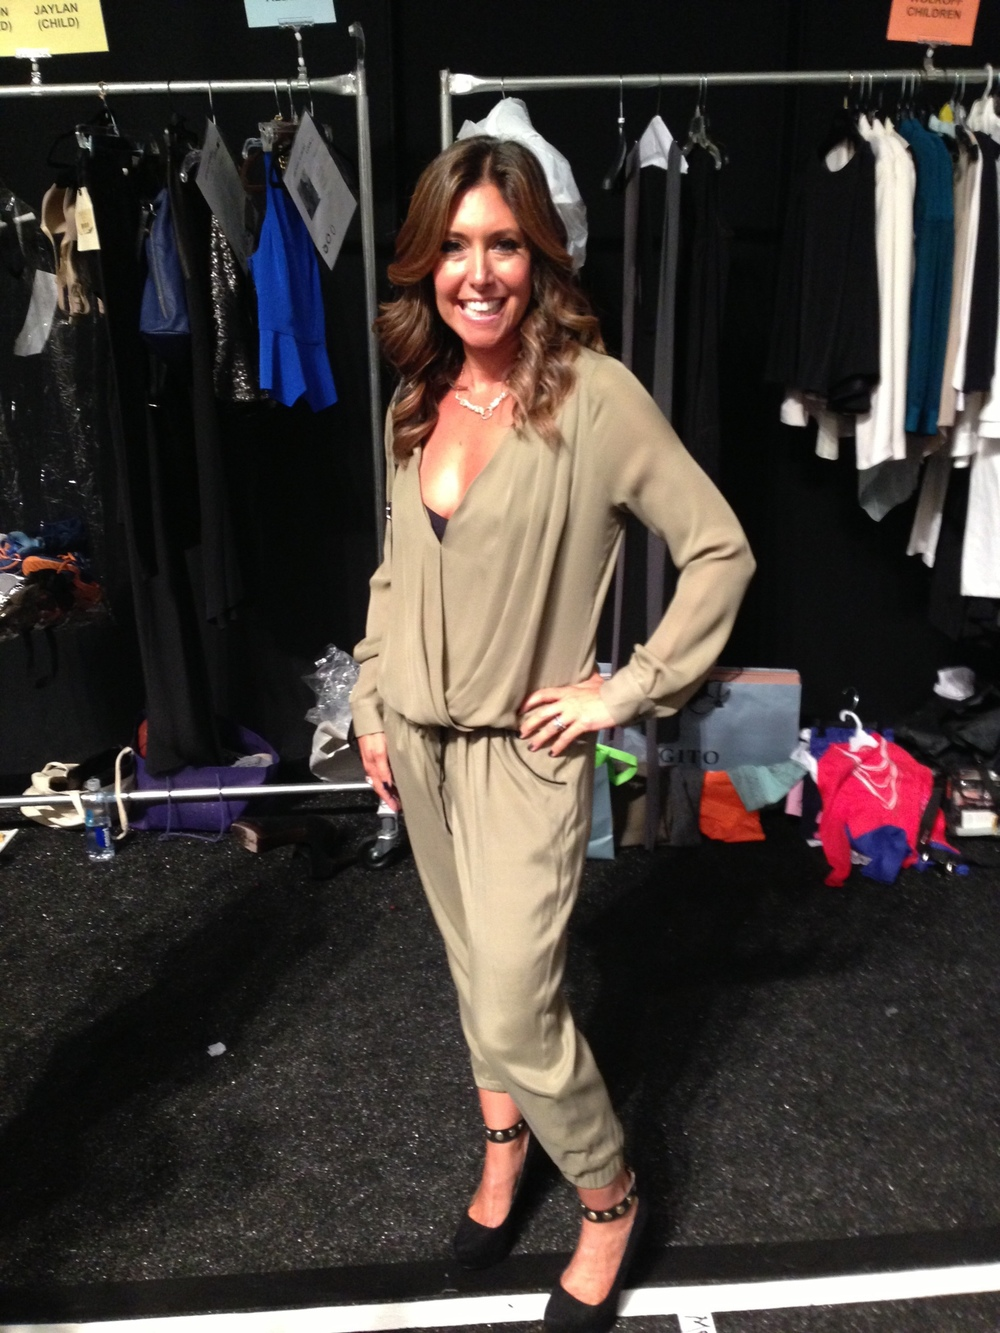 Back Stage: All dressed and ready to strut the runway! Pants and top by  Ramy Brook.